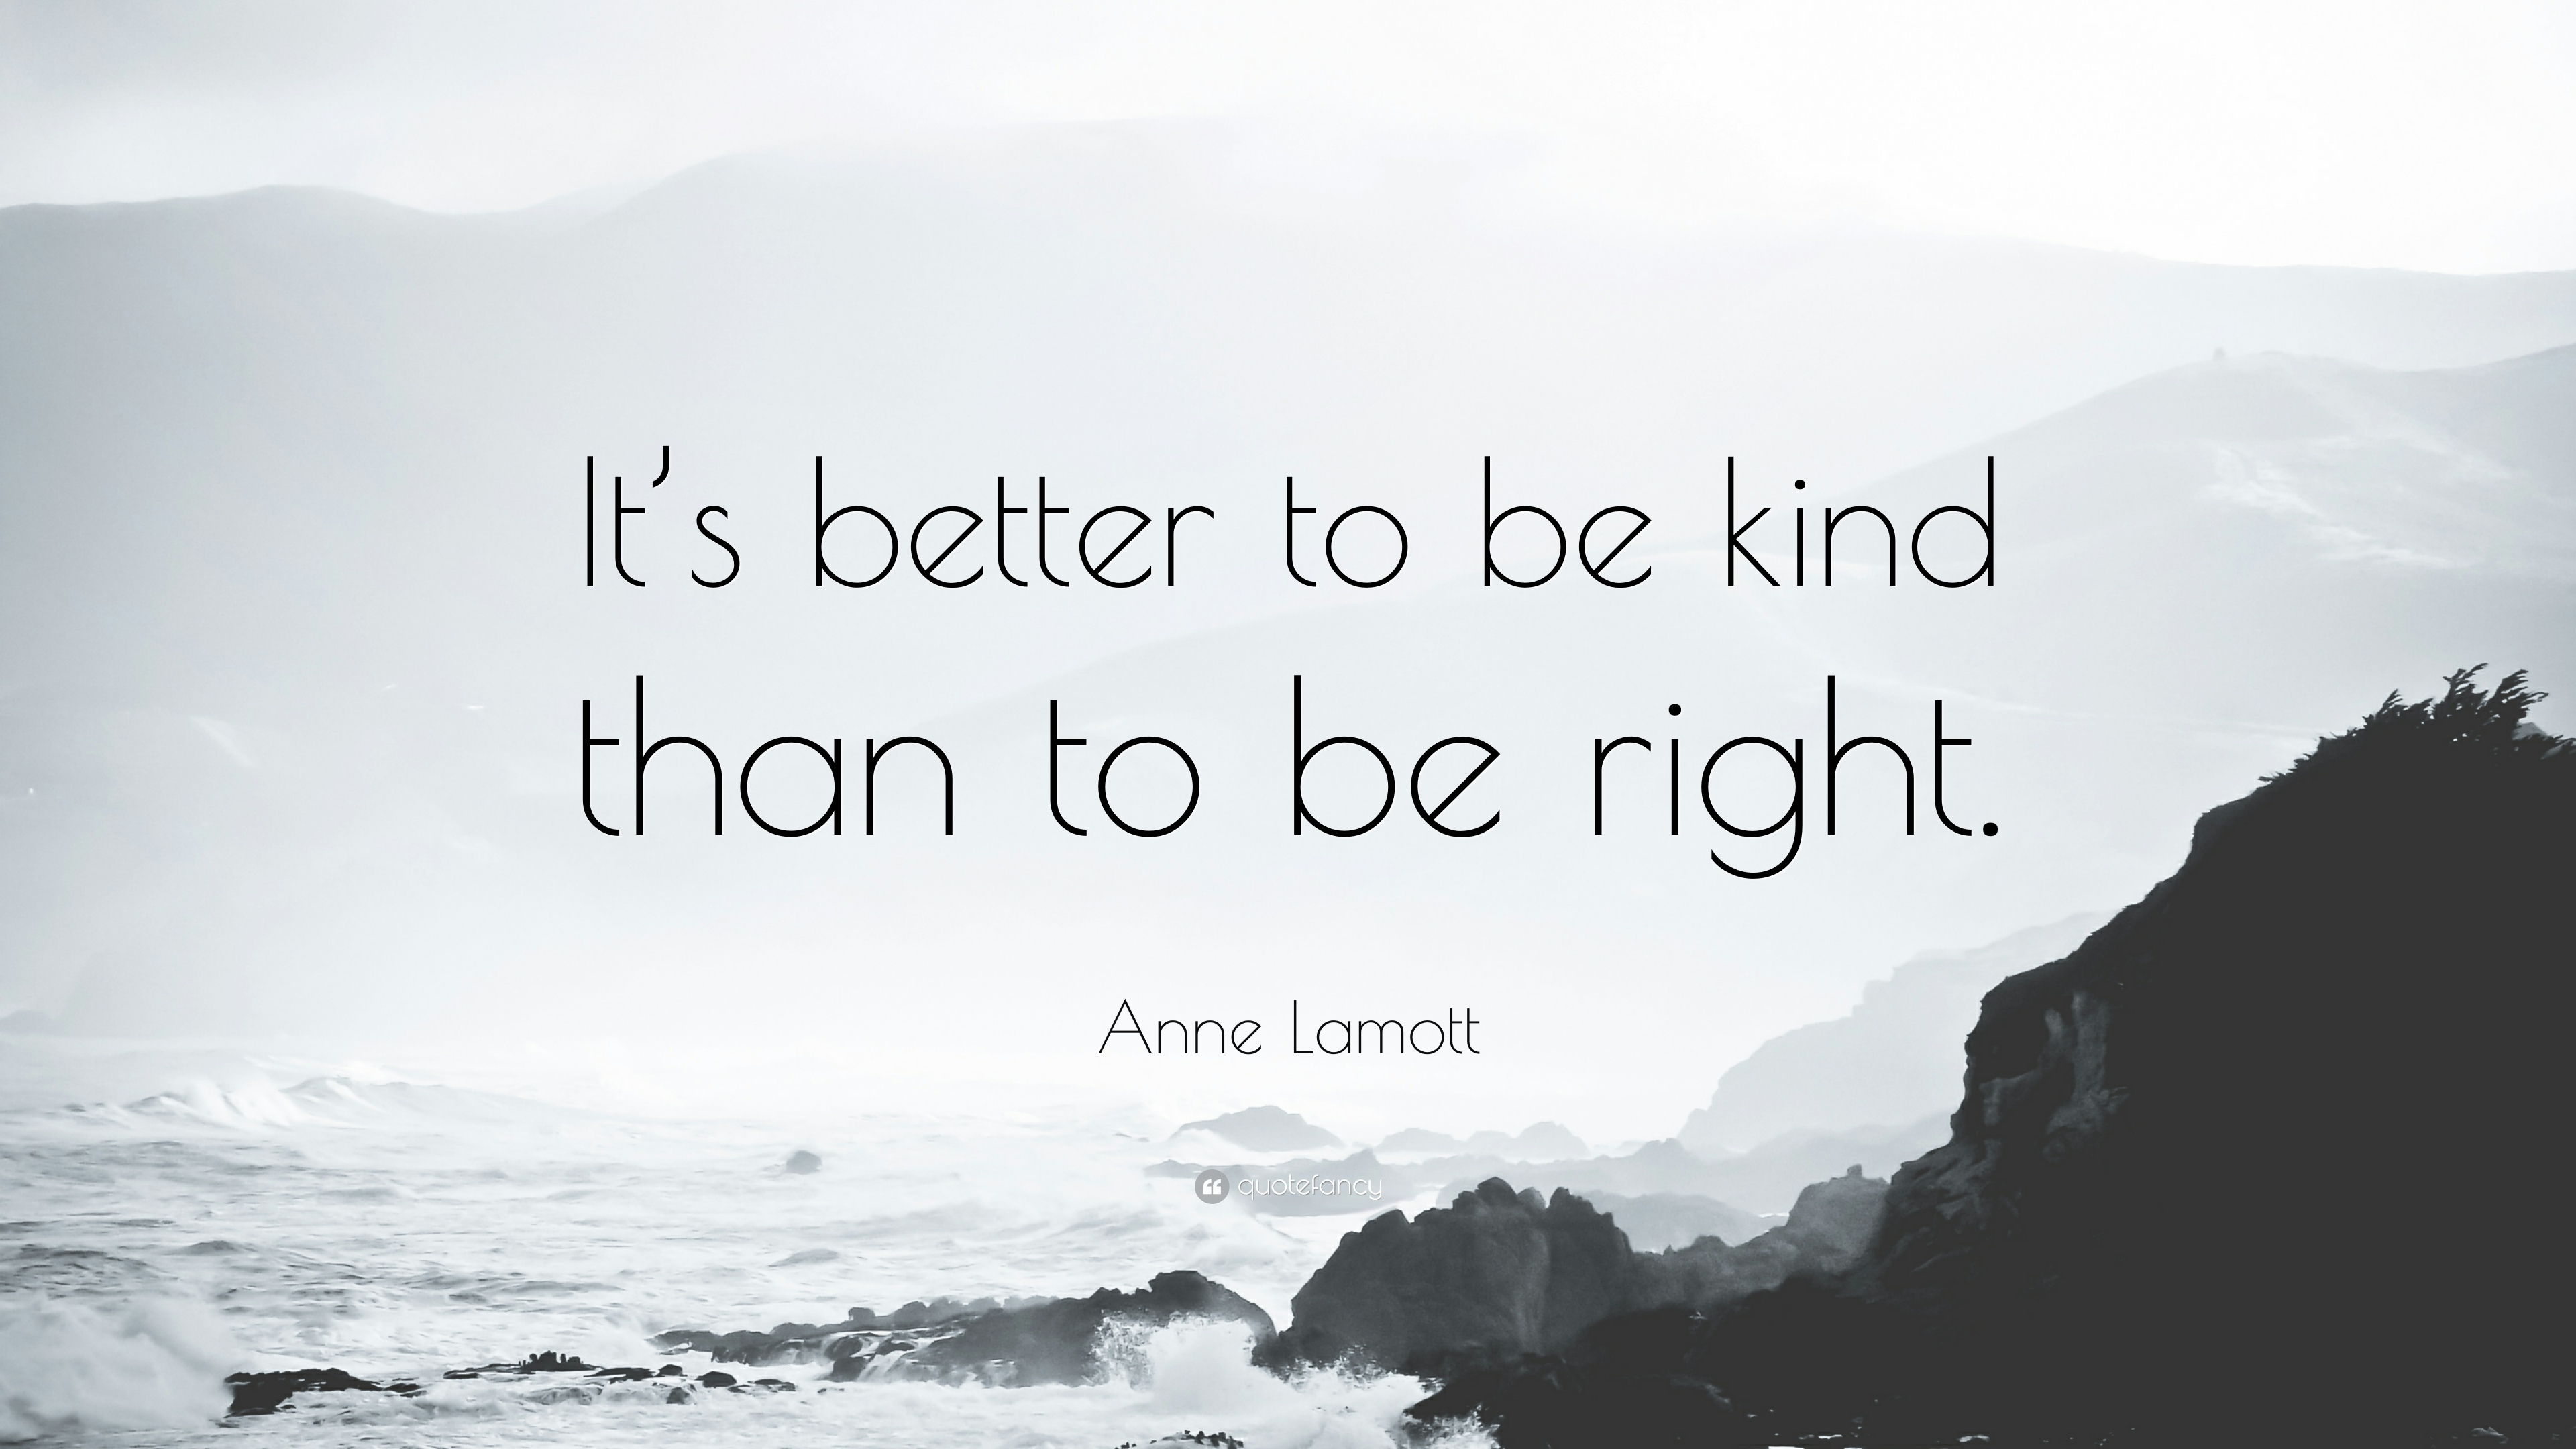 252336-Anne-Lamott-Quote-It-s-better-to-be-kind-than-to-be-right